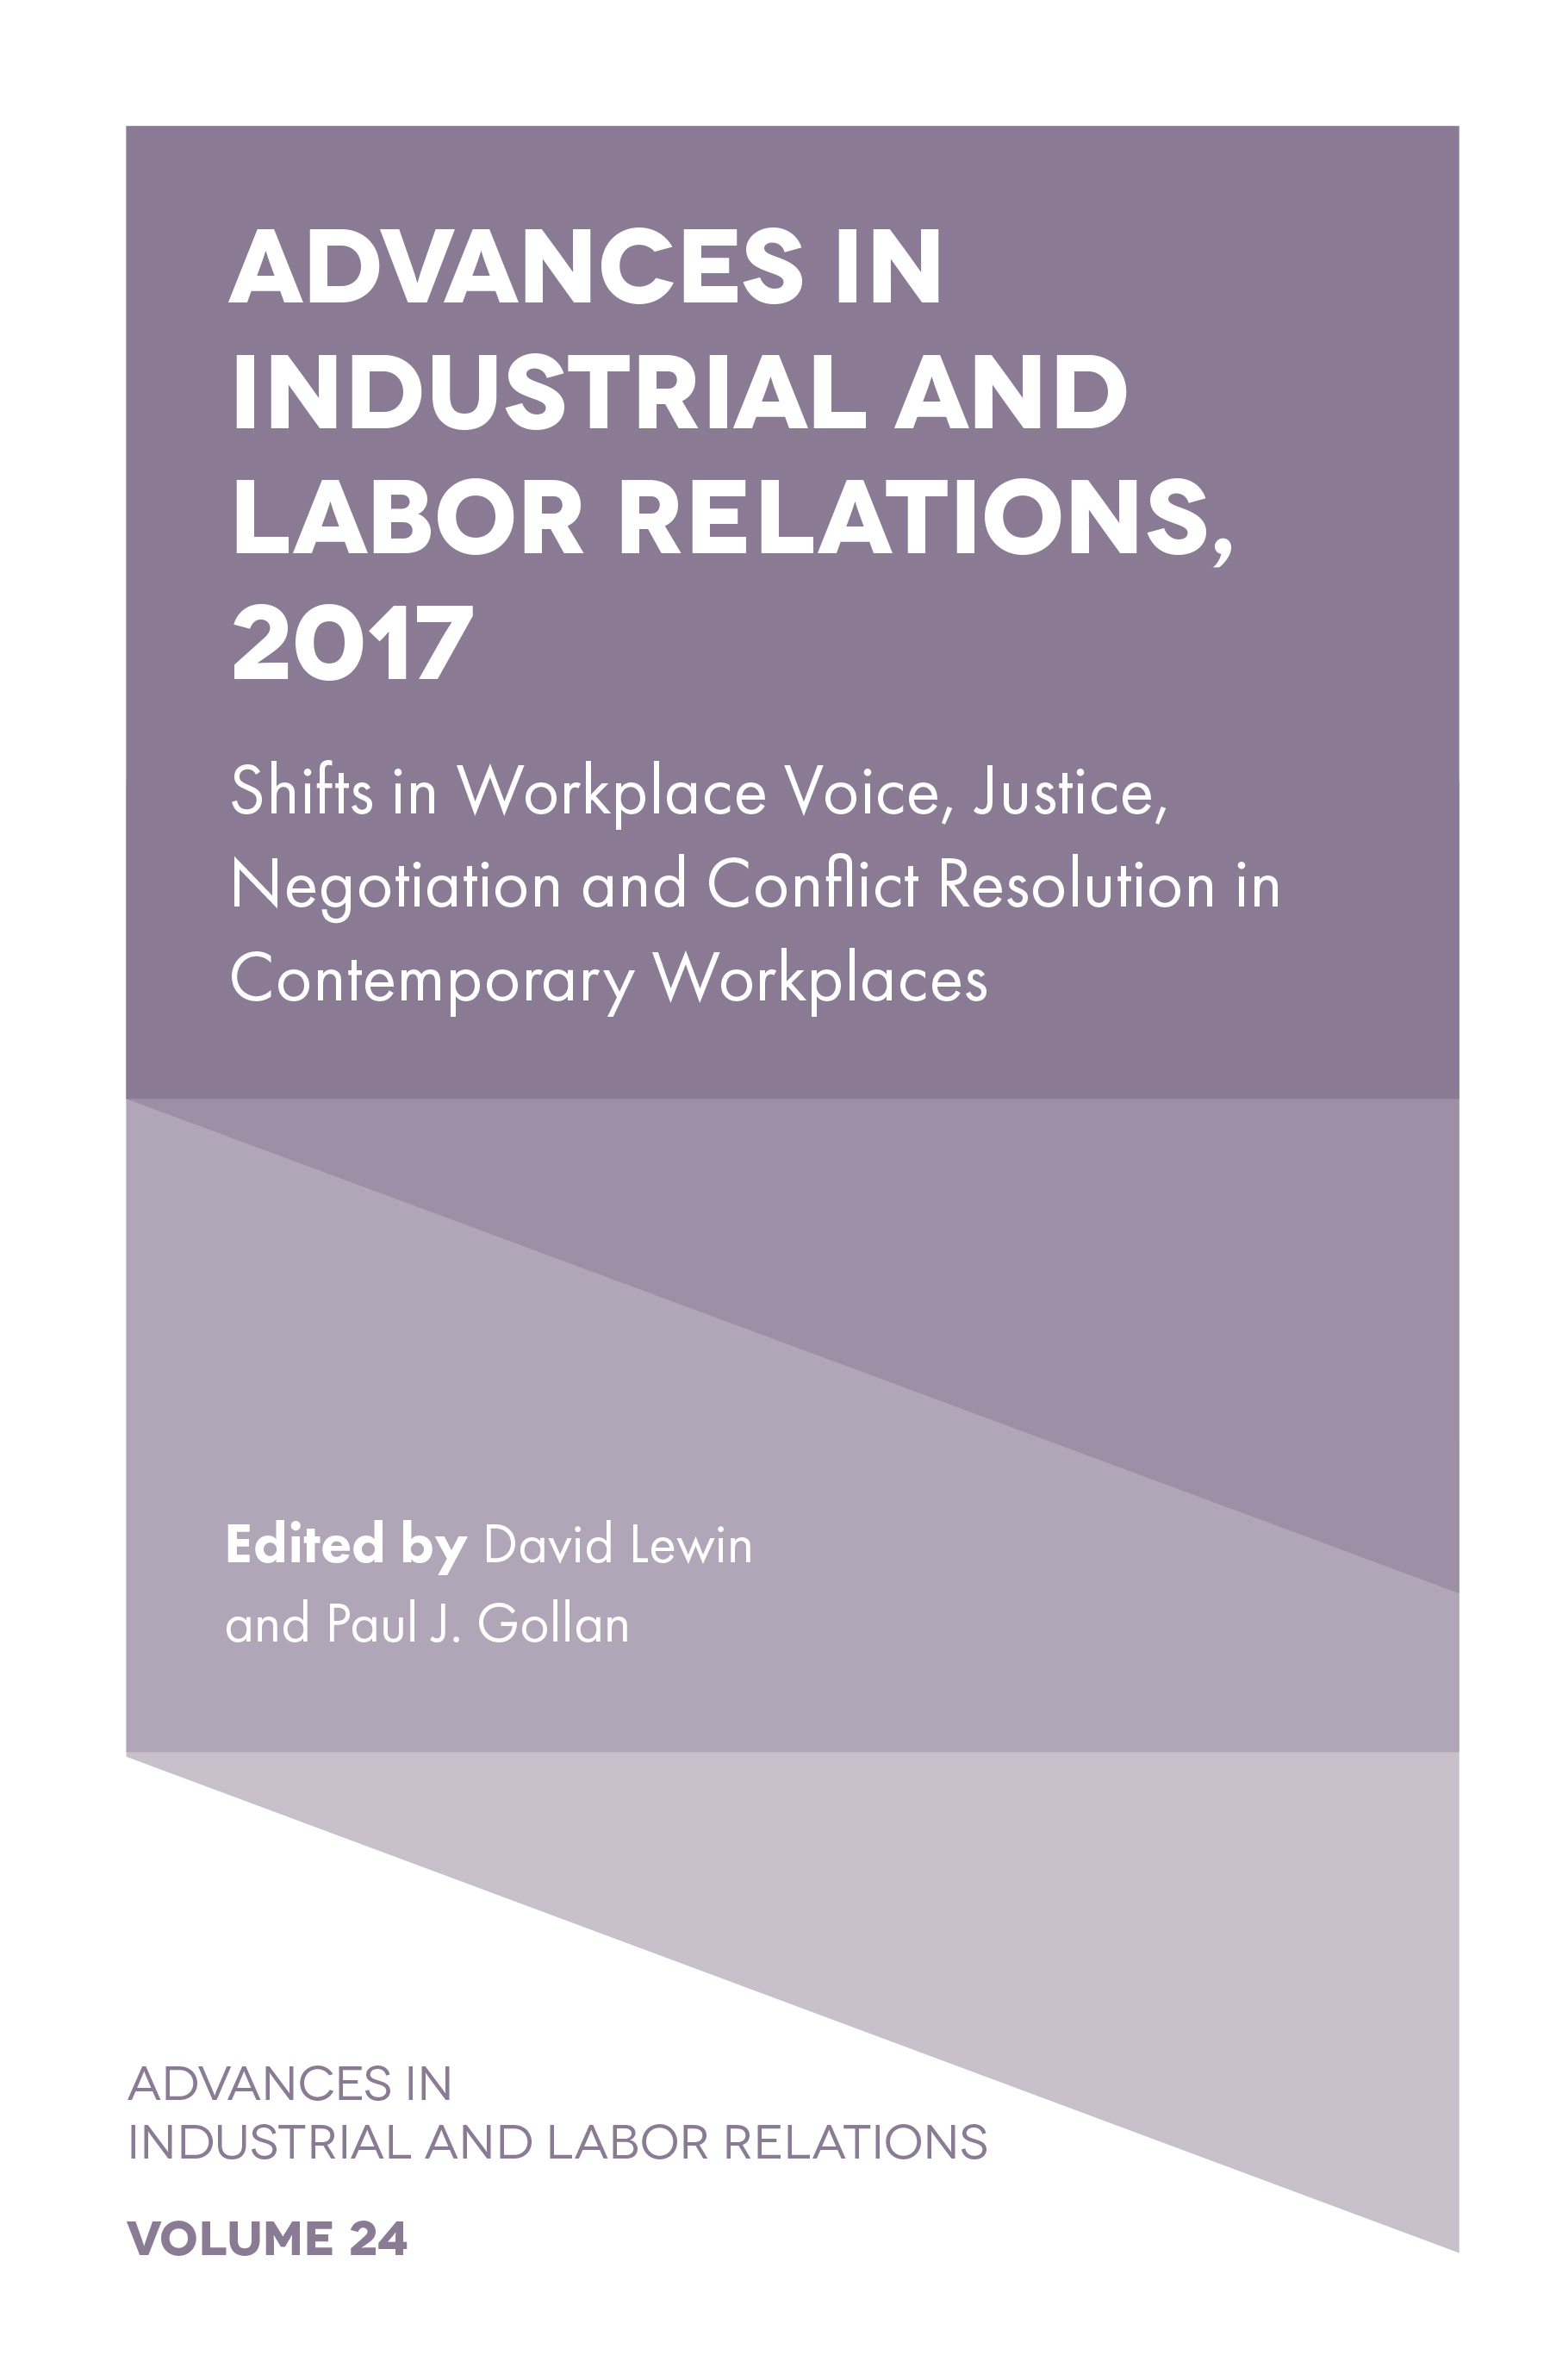 Book cover for Advances in Industrial and Labor Relations, 2017:  Shifts in Workplace Voice, Justice, Negotiation and Conflict Resolution in Contemporary Workplaces a book by David  Lewin, Paul J. Gollan